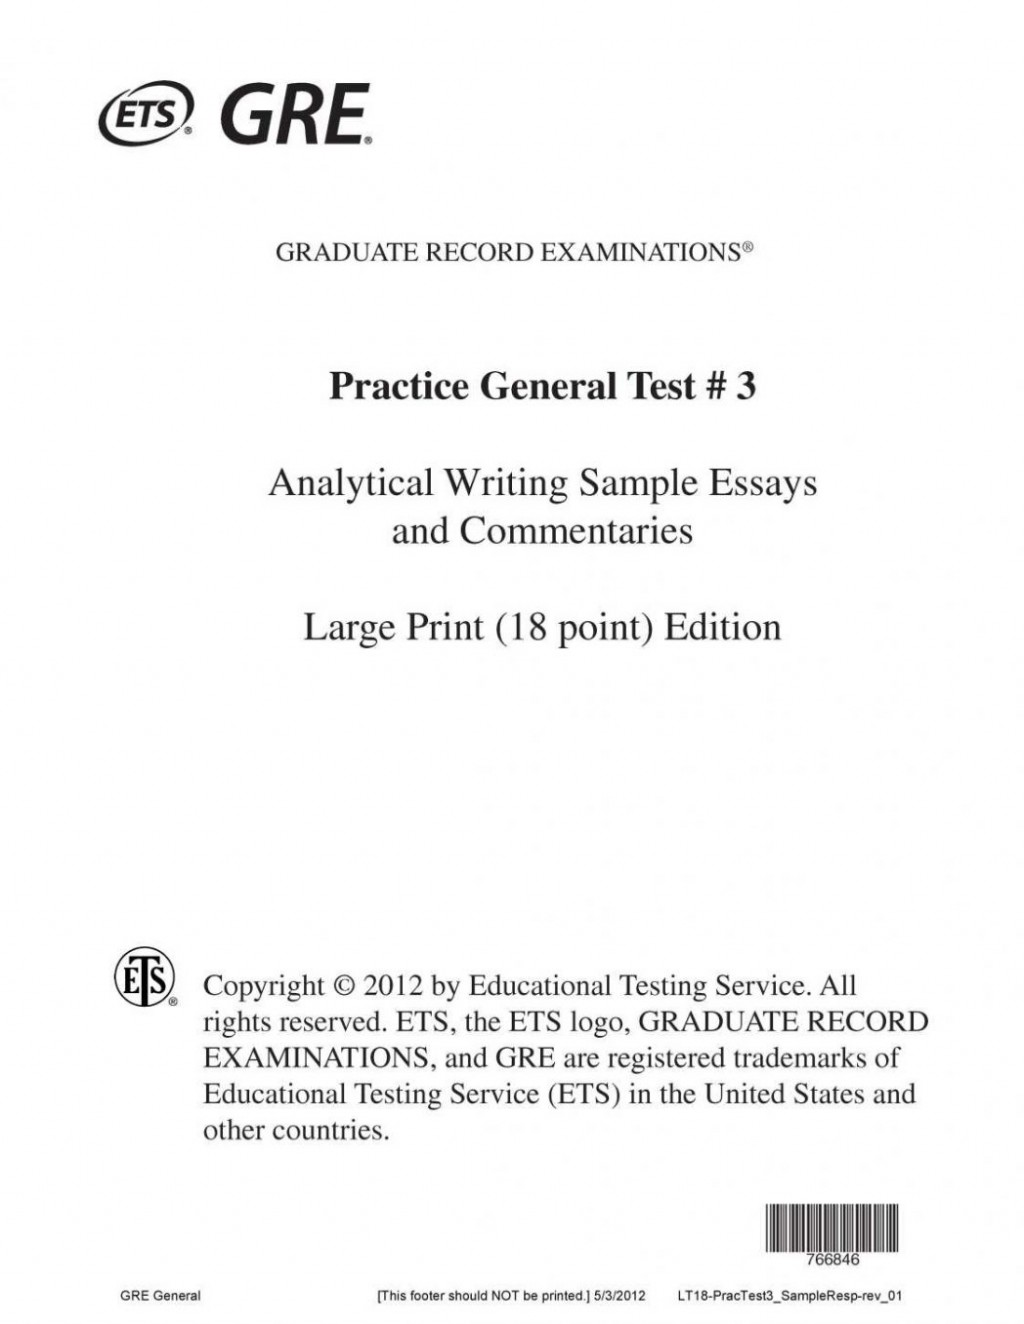 011 Gre Essay Prompts Issue Research Paper Writing Service Jdpapermulx Analytical Solutions To The Real Topics Book Pdf Essays Examples Haadyaooverbayresortco Download Free Test Fantastic Pool With Answers Large